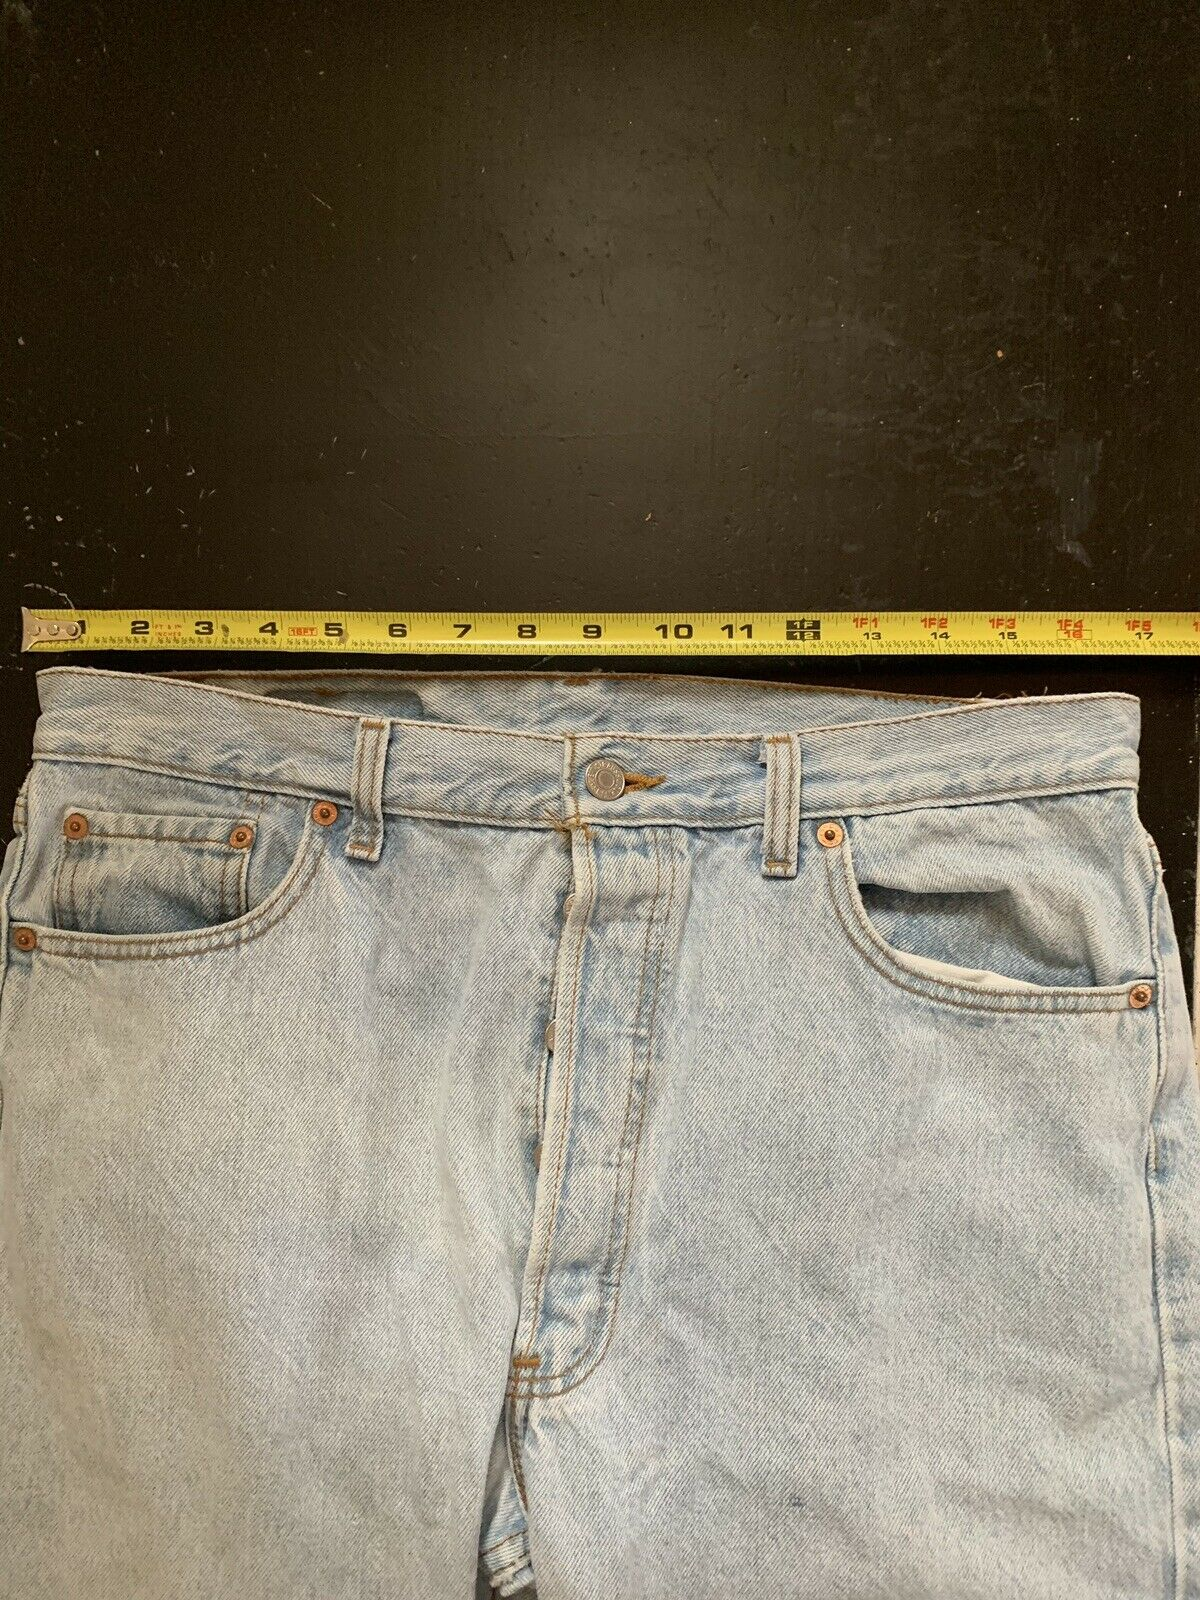 Levis Vintage 501 Made In USA - image 5